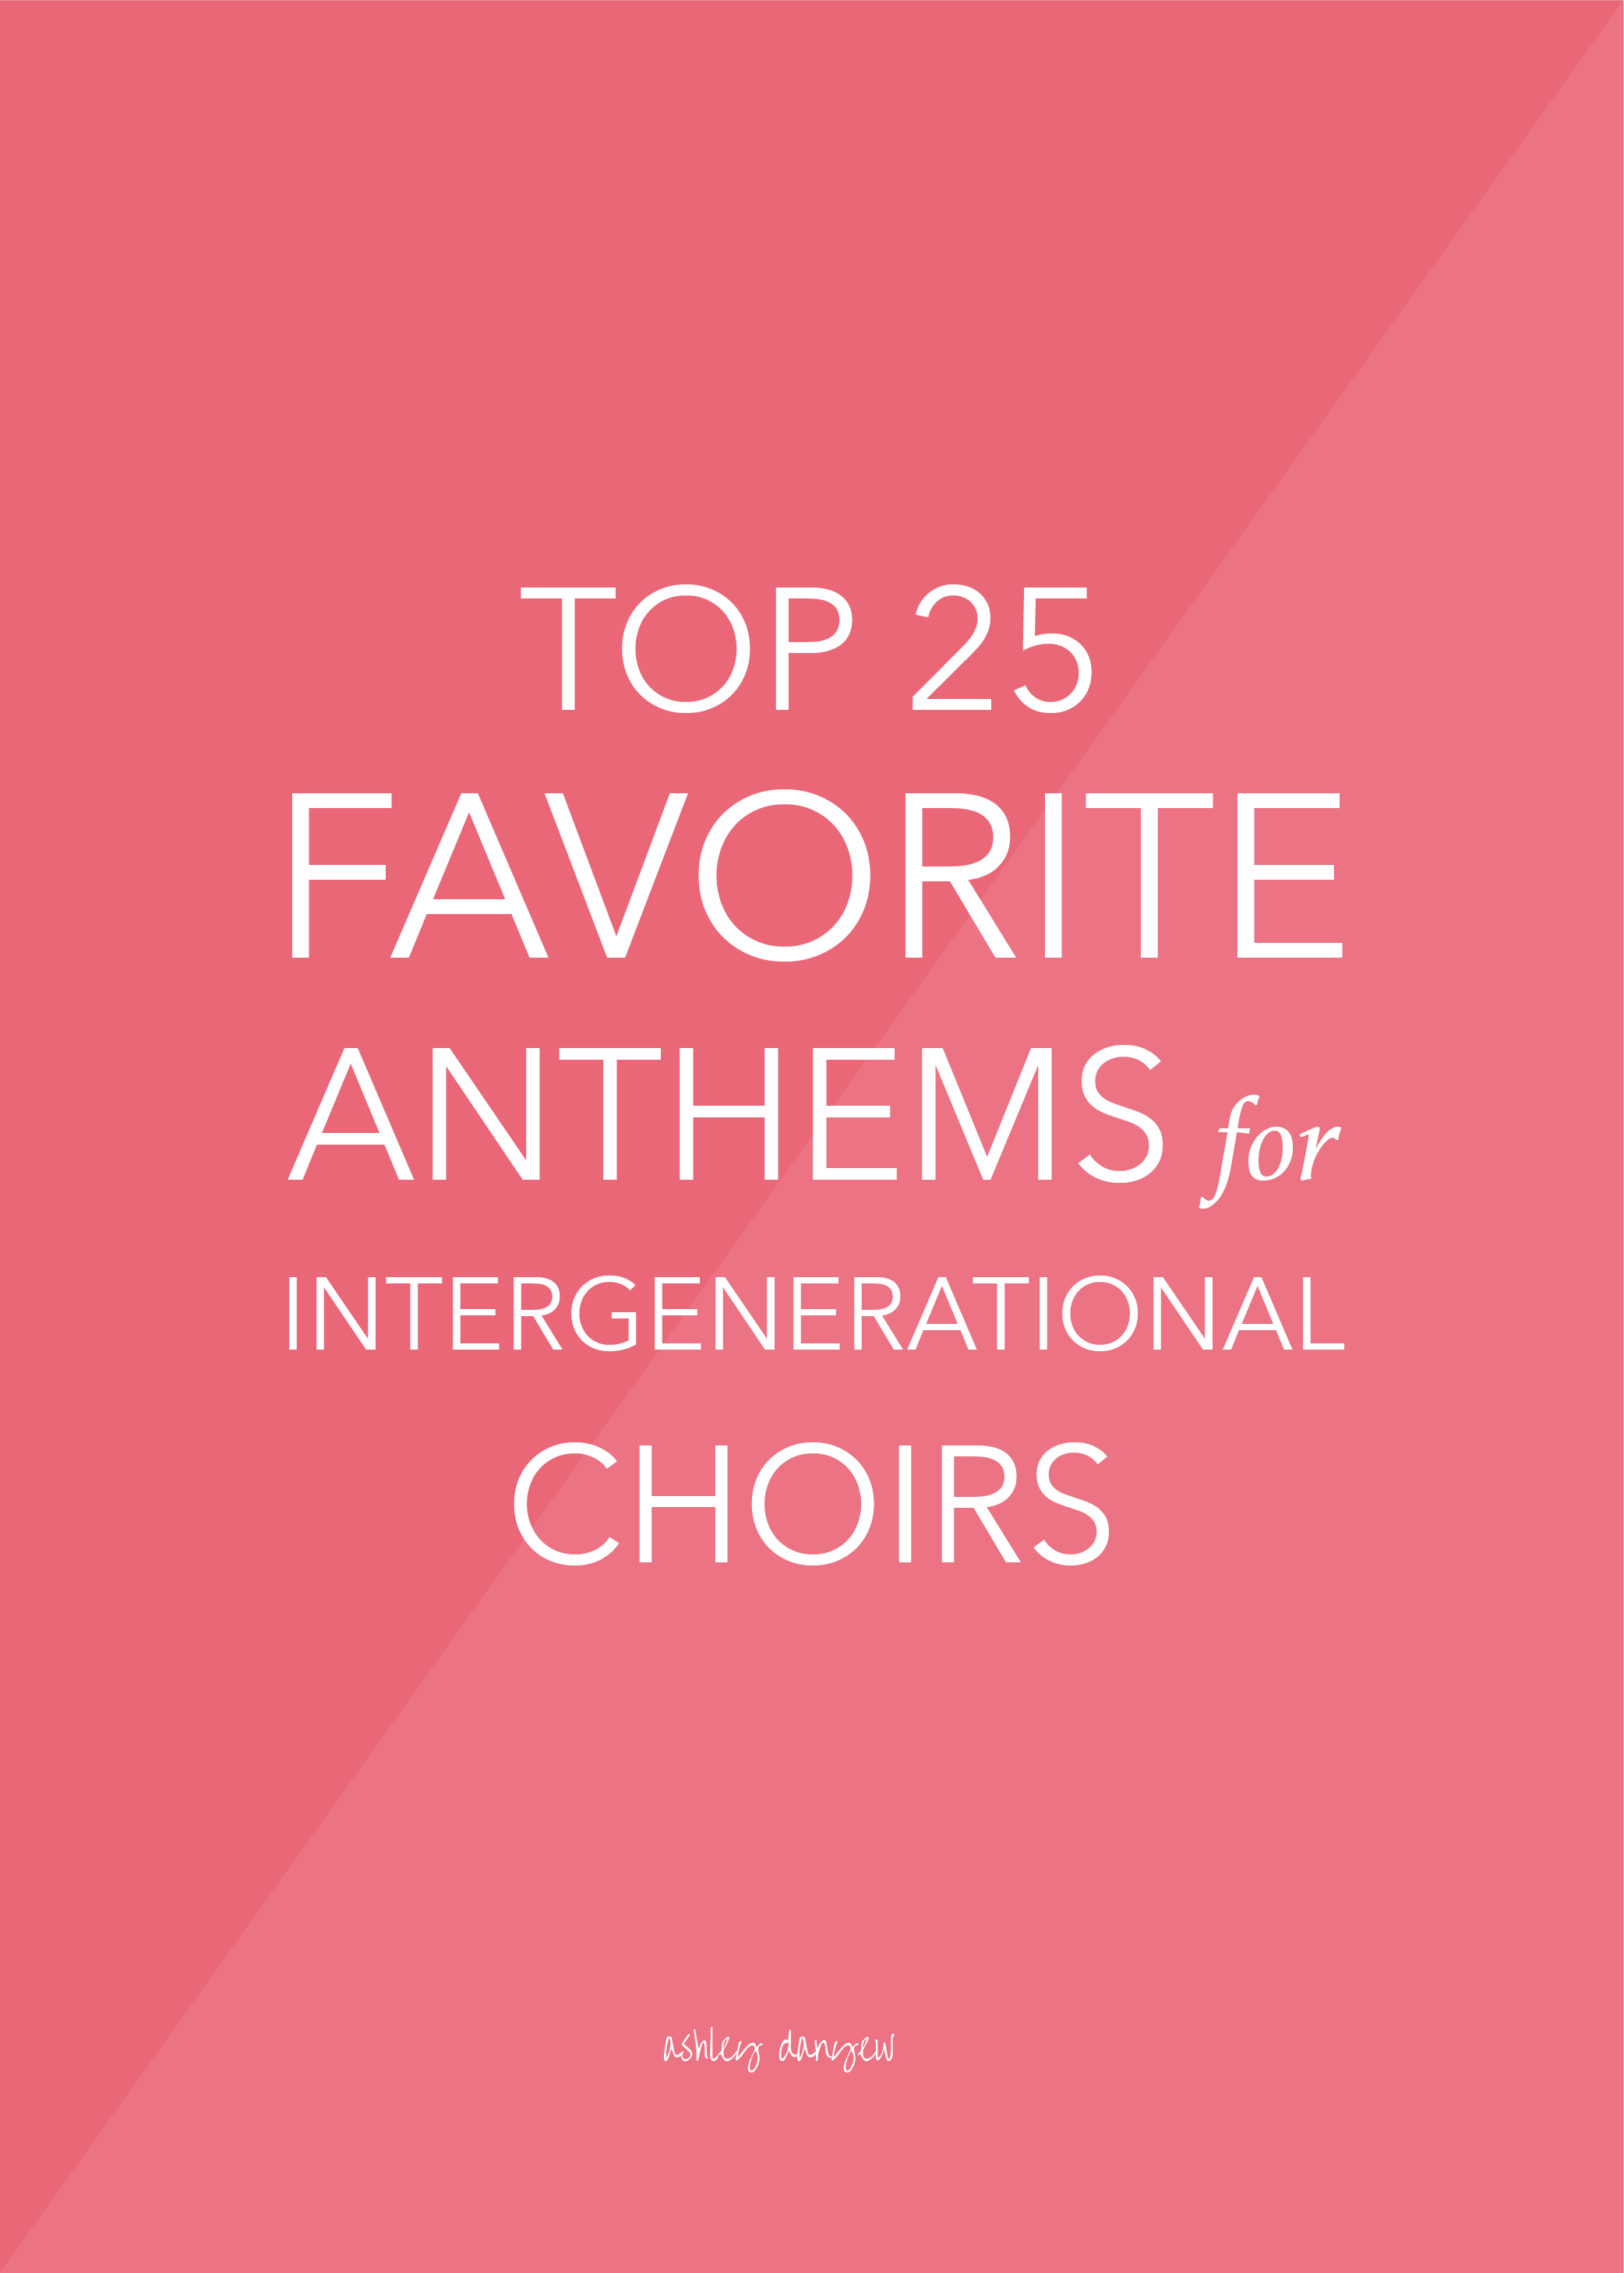 Copy of Top 25 Favorite Anthems for Intergenerational Choirs